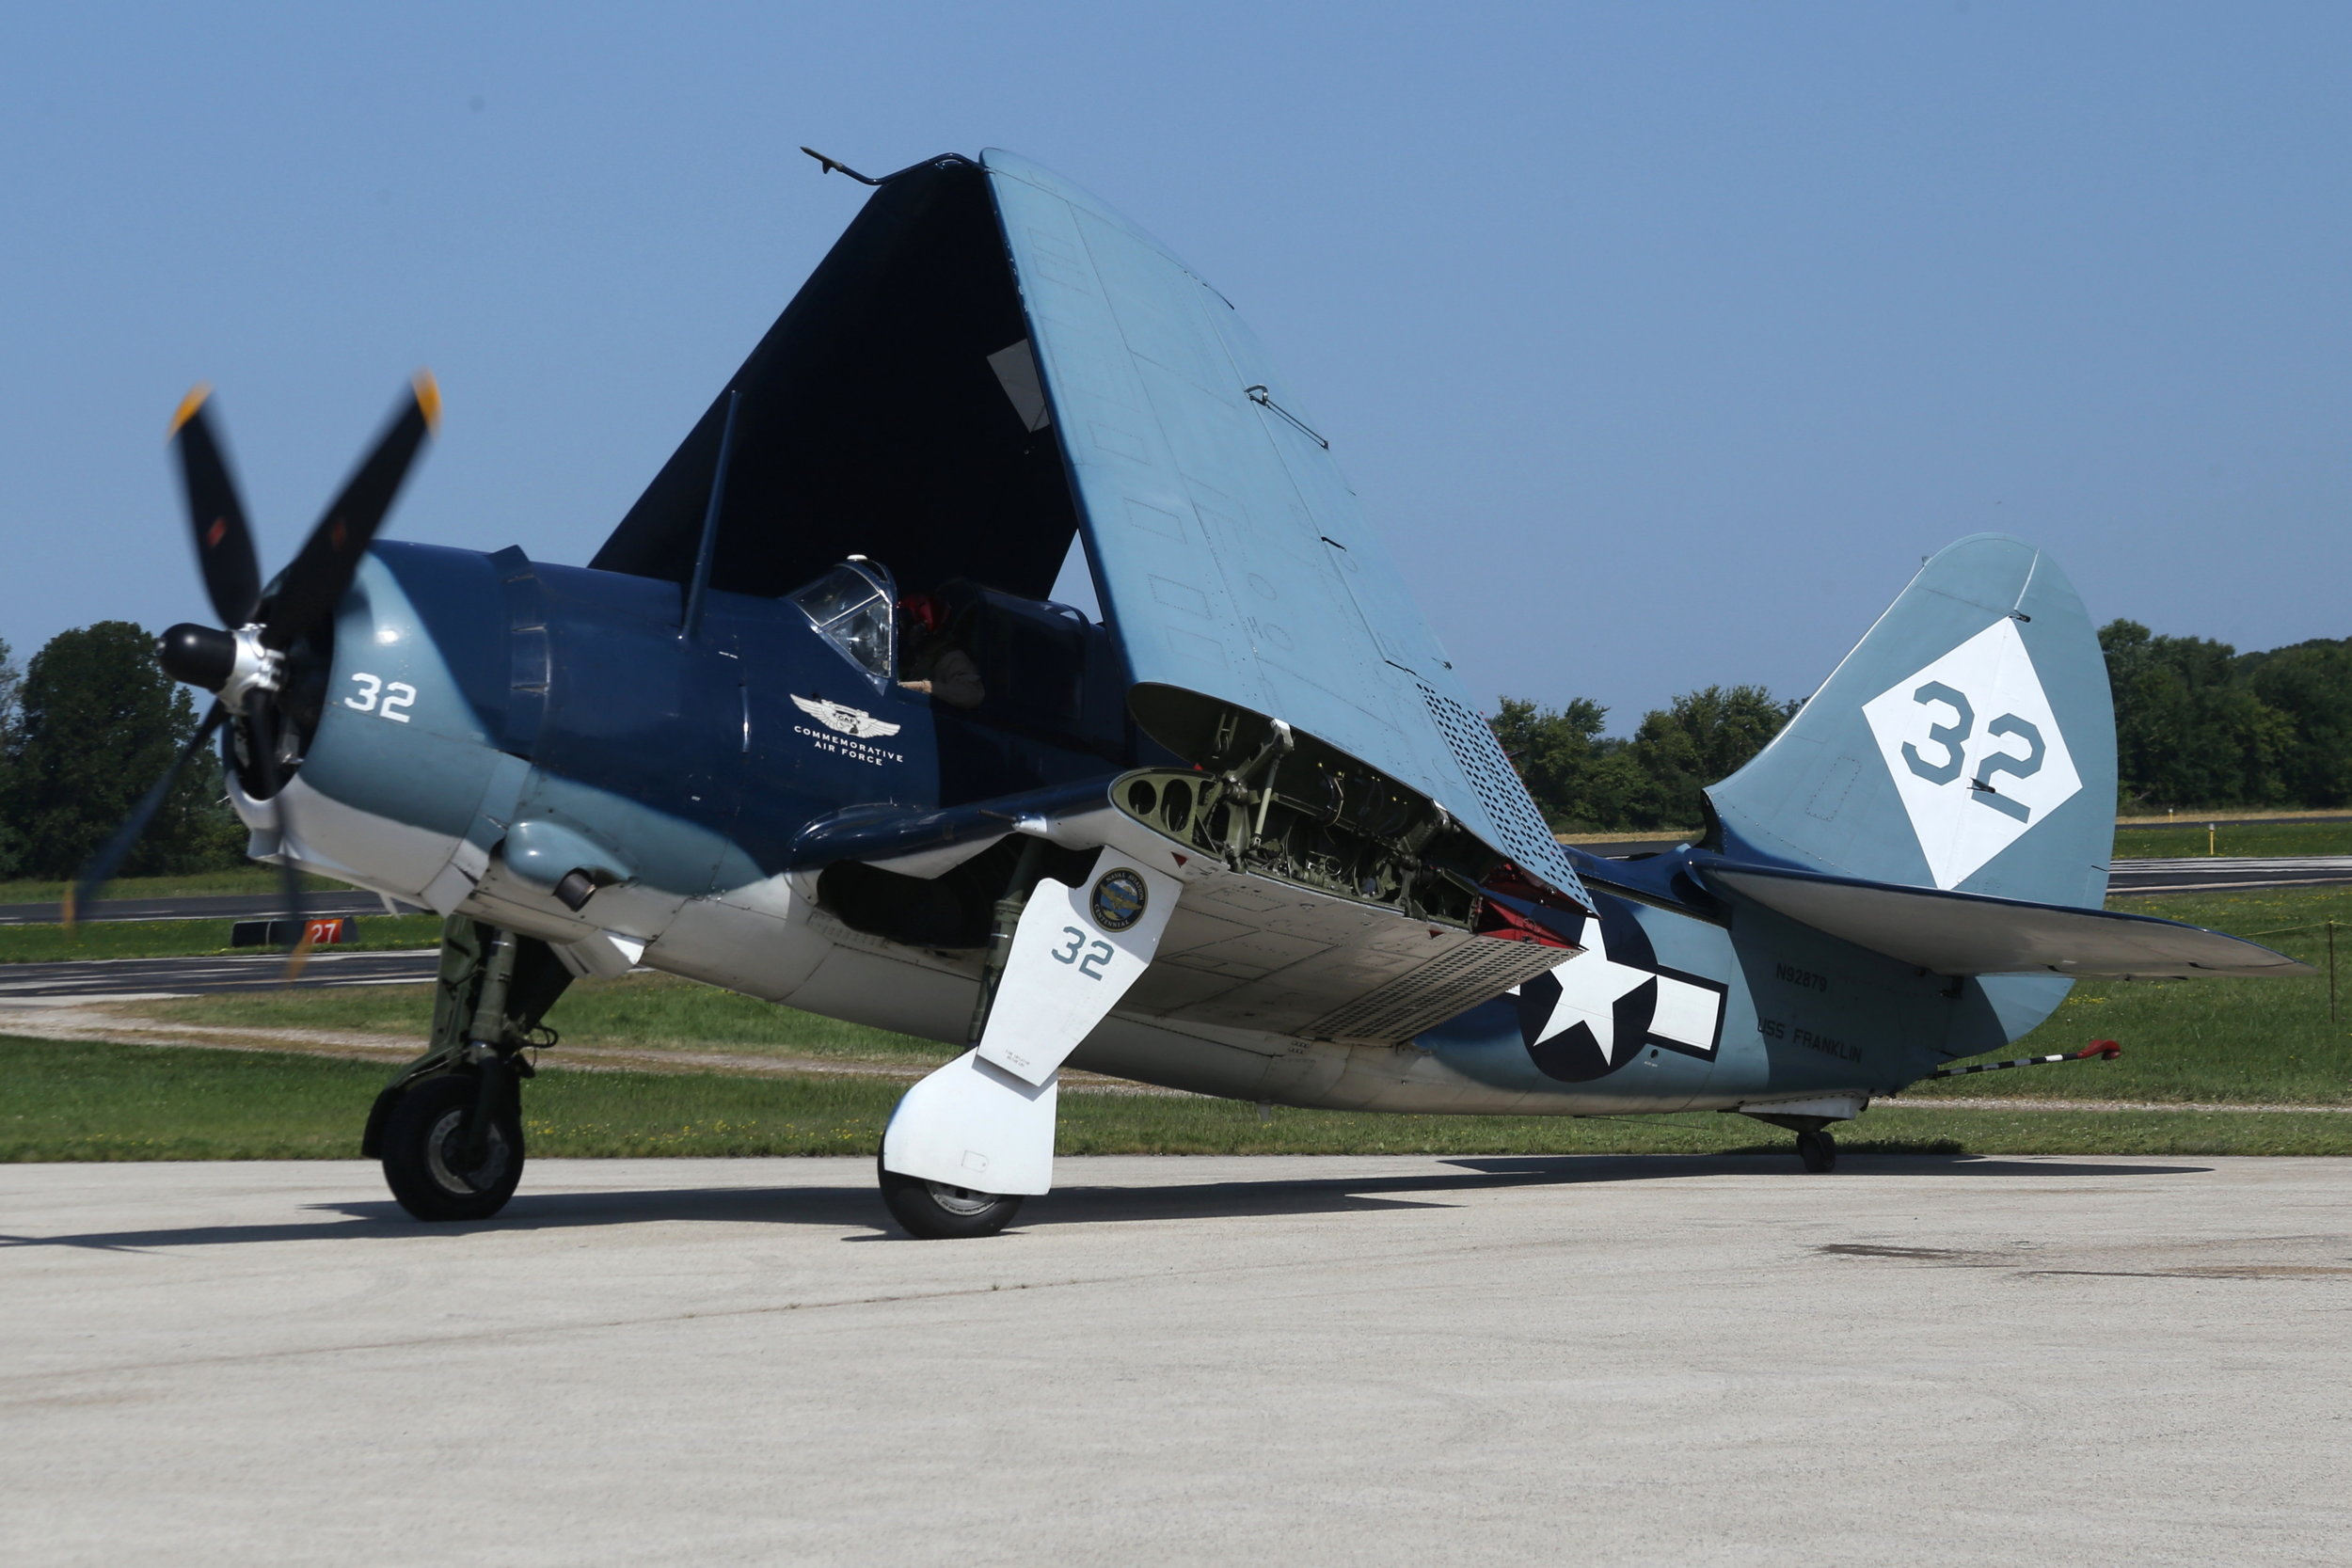 N92879 Commemorative Air Force Curtis Helldiver taken at Fond Du Lac 29th July 2018 by John Wood